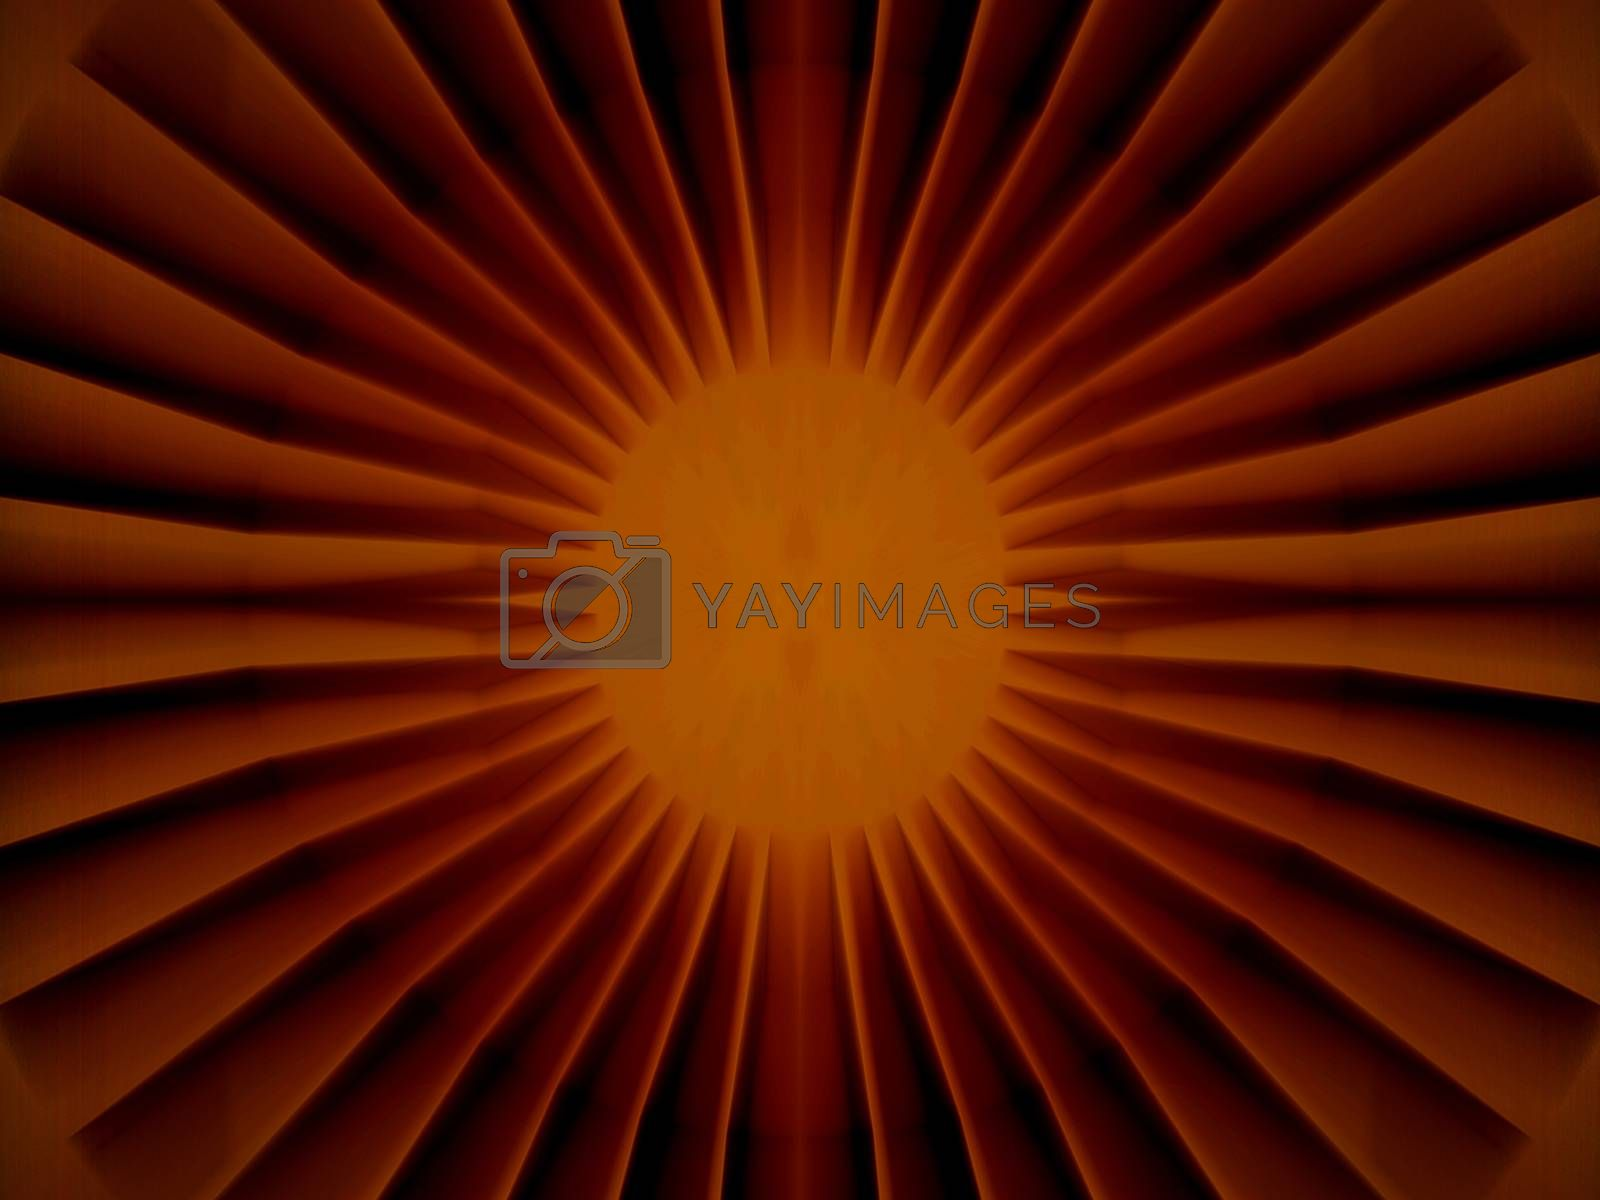 Royalty free image of Bright inner core structure, red sun by fjanecic